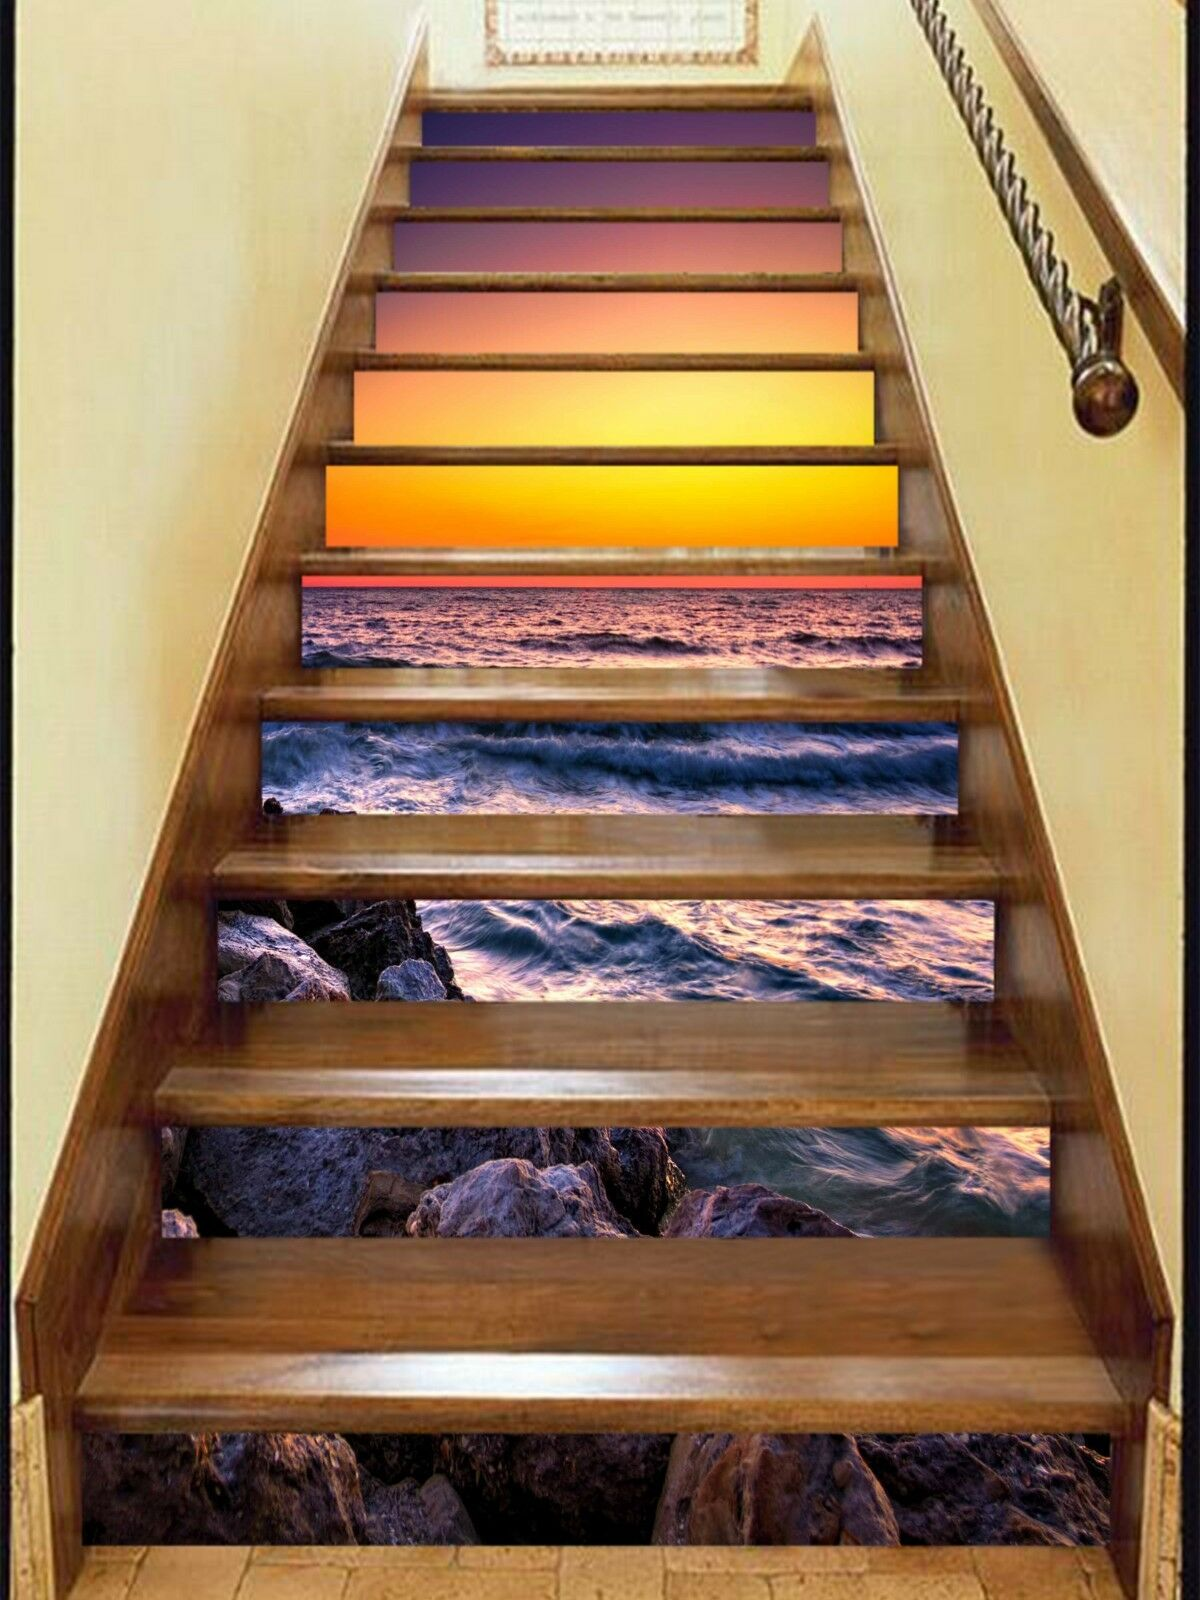 3D River Sunset 2 Stair Risers Decoration Photo Mural Vinyl Decal Wallpaper CA